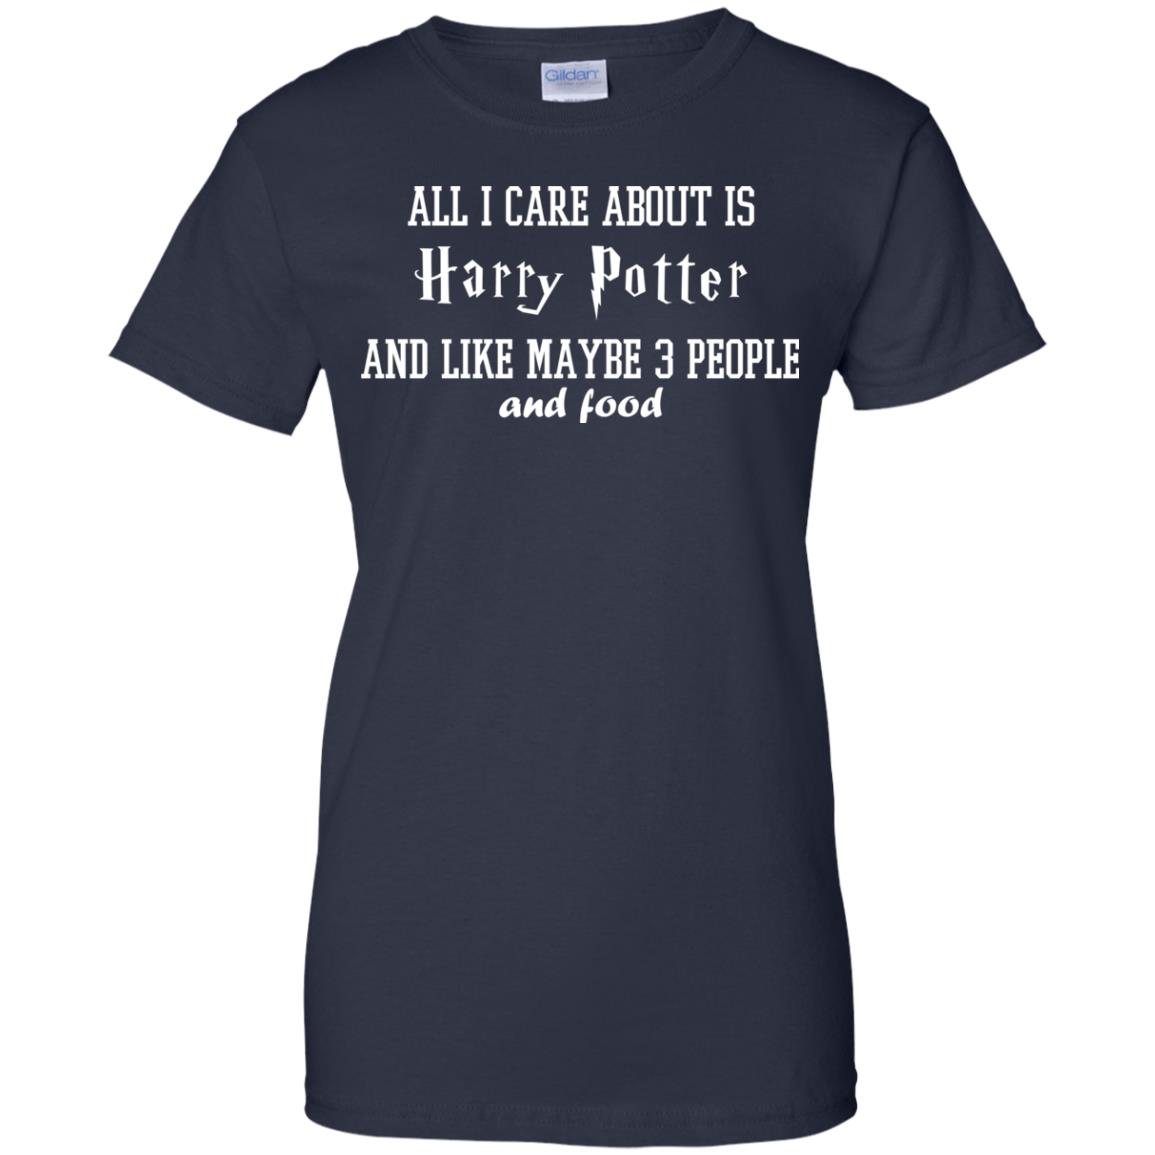 image 286px All I care about is Harry Potter and maybe 3 people and food t shirt